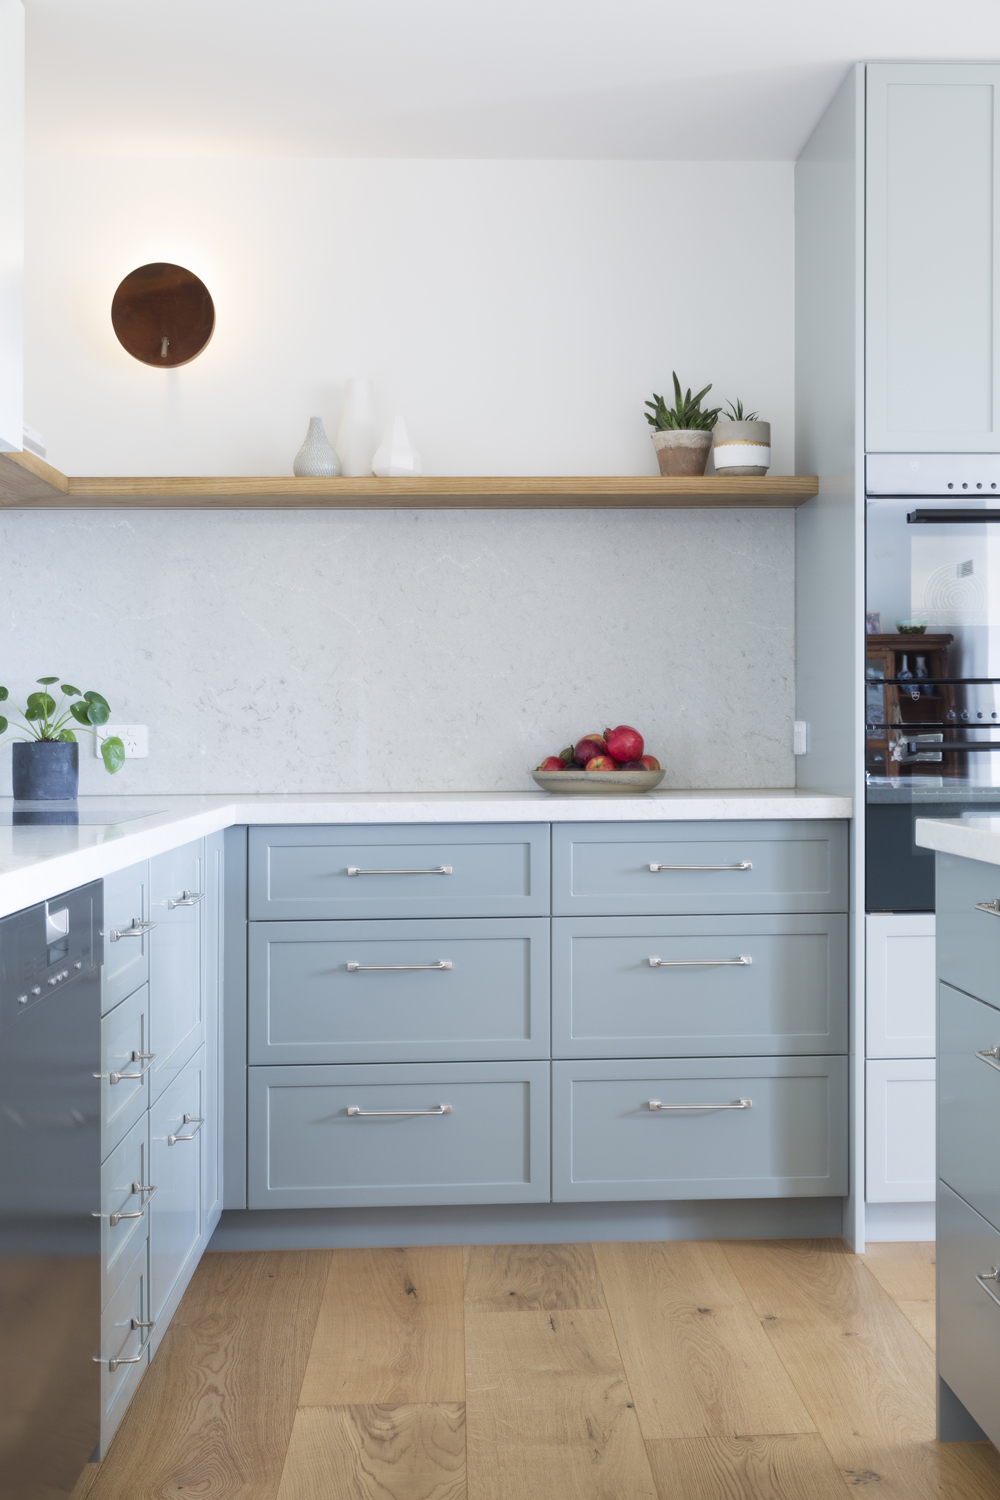 Kitchen renovation by interior designer Melbourne. Red Hill kitchen designed by Meredith Lee.